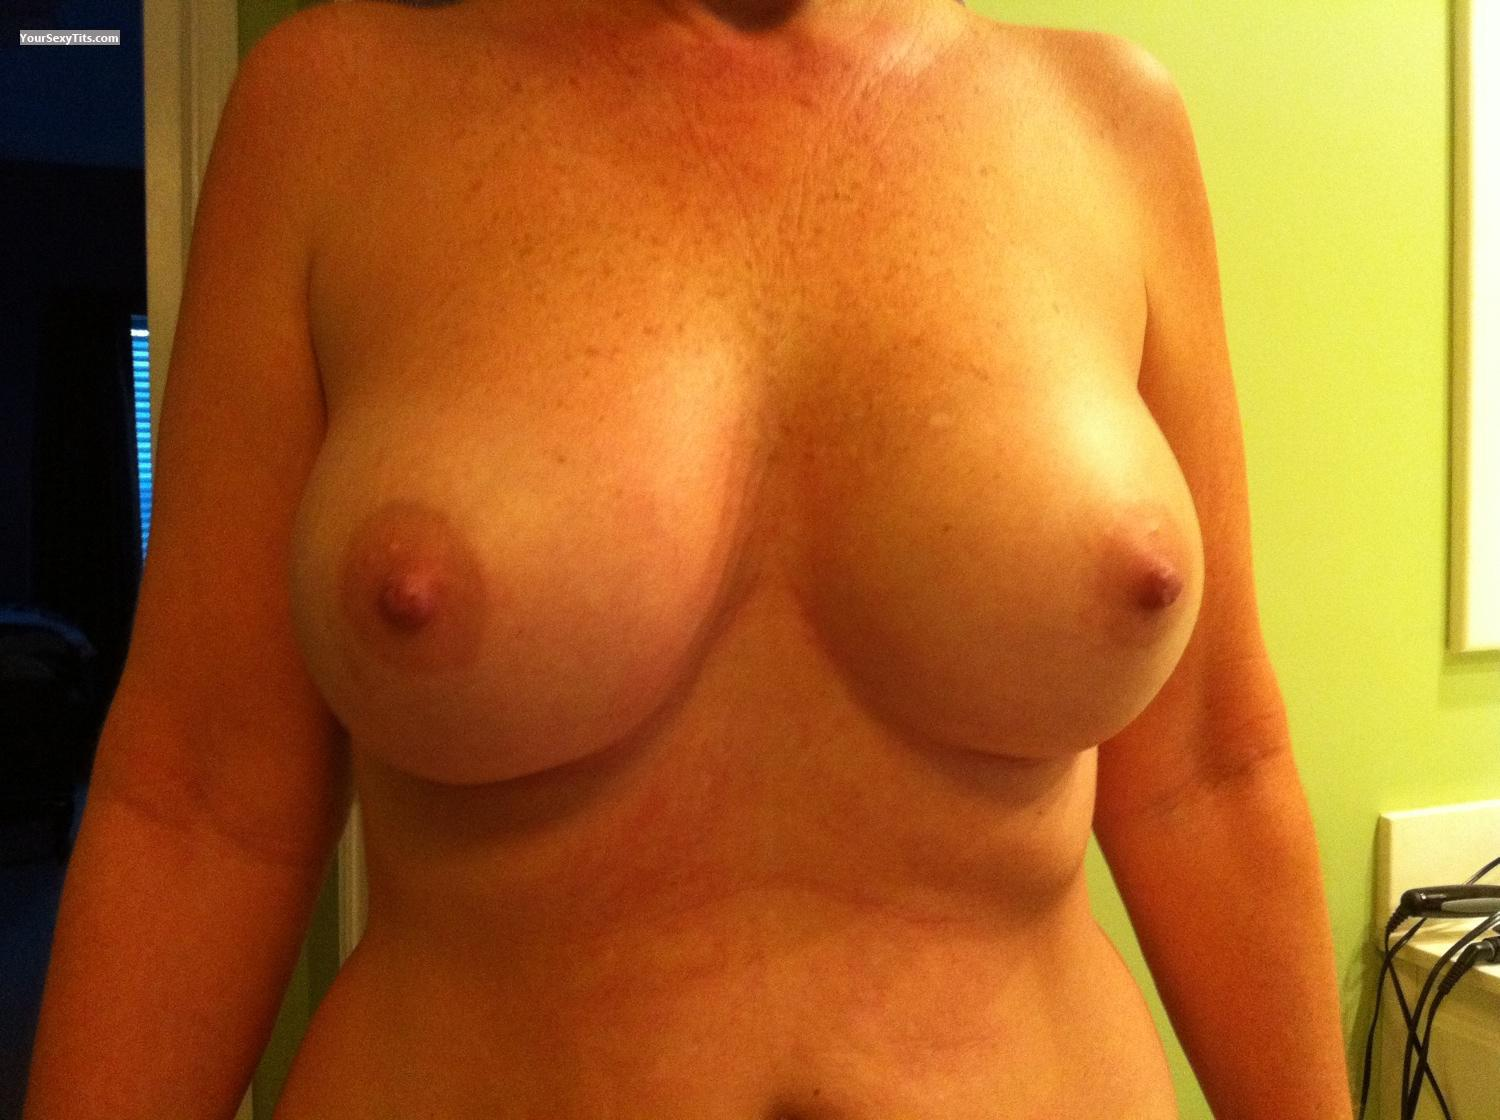 Tit Flash: Big Tits By IPhone - Paige from United States